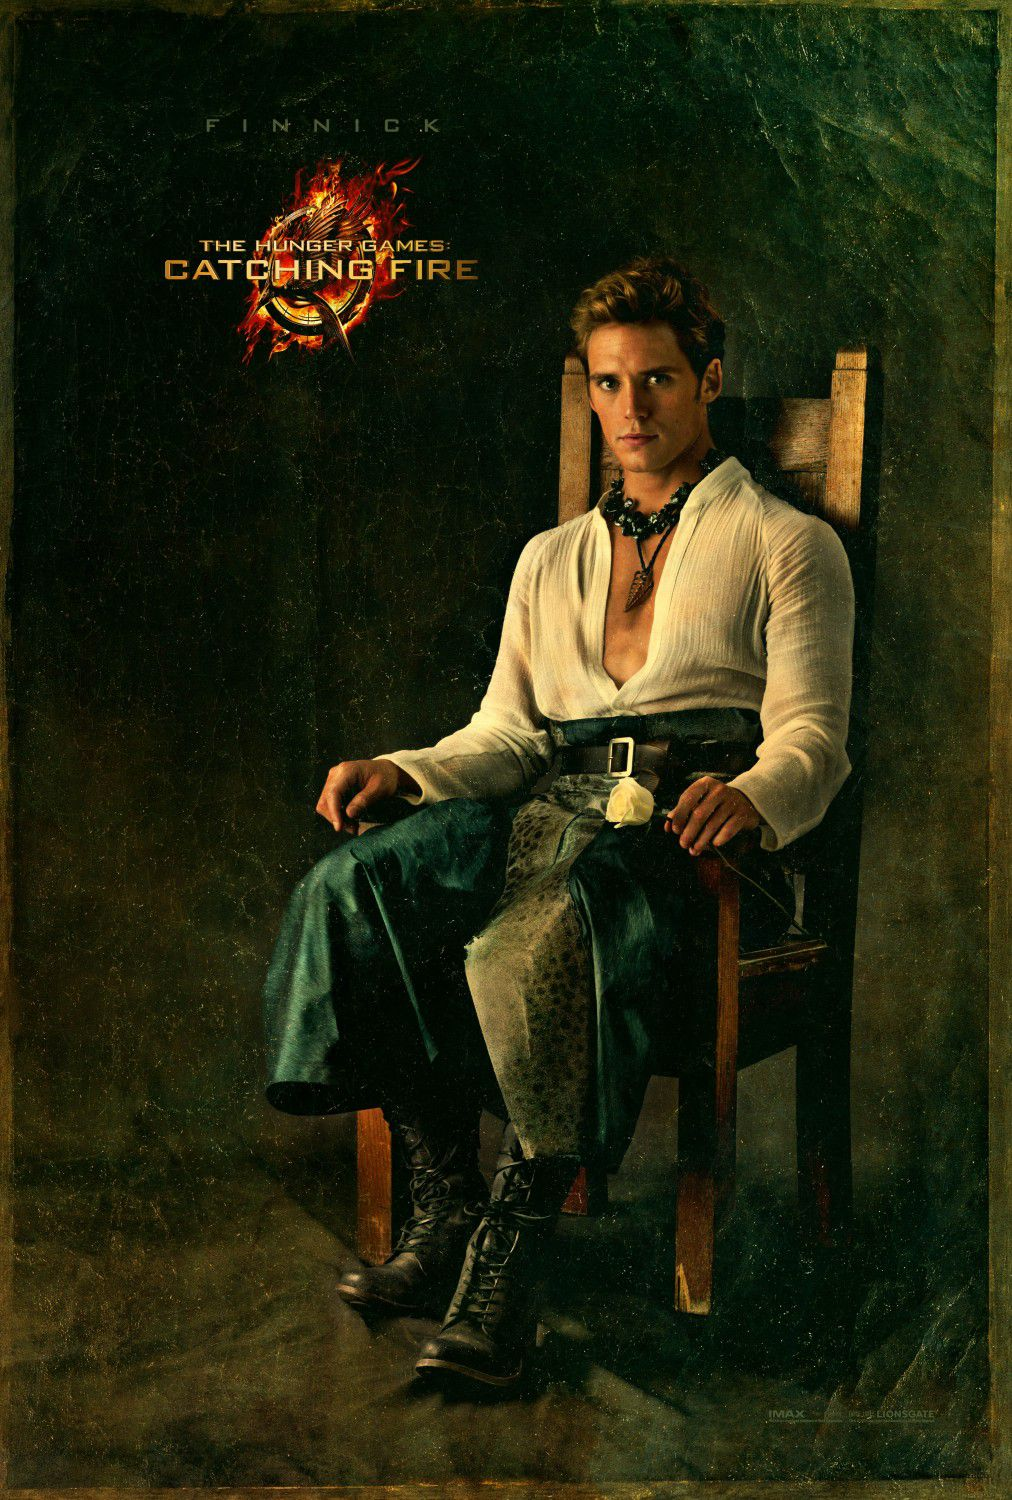 Sam Claflin is Finnick Odair